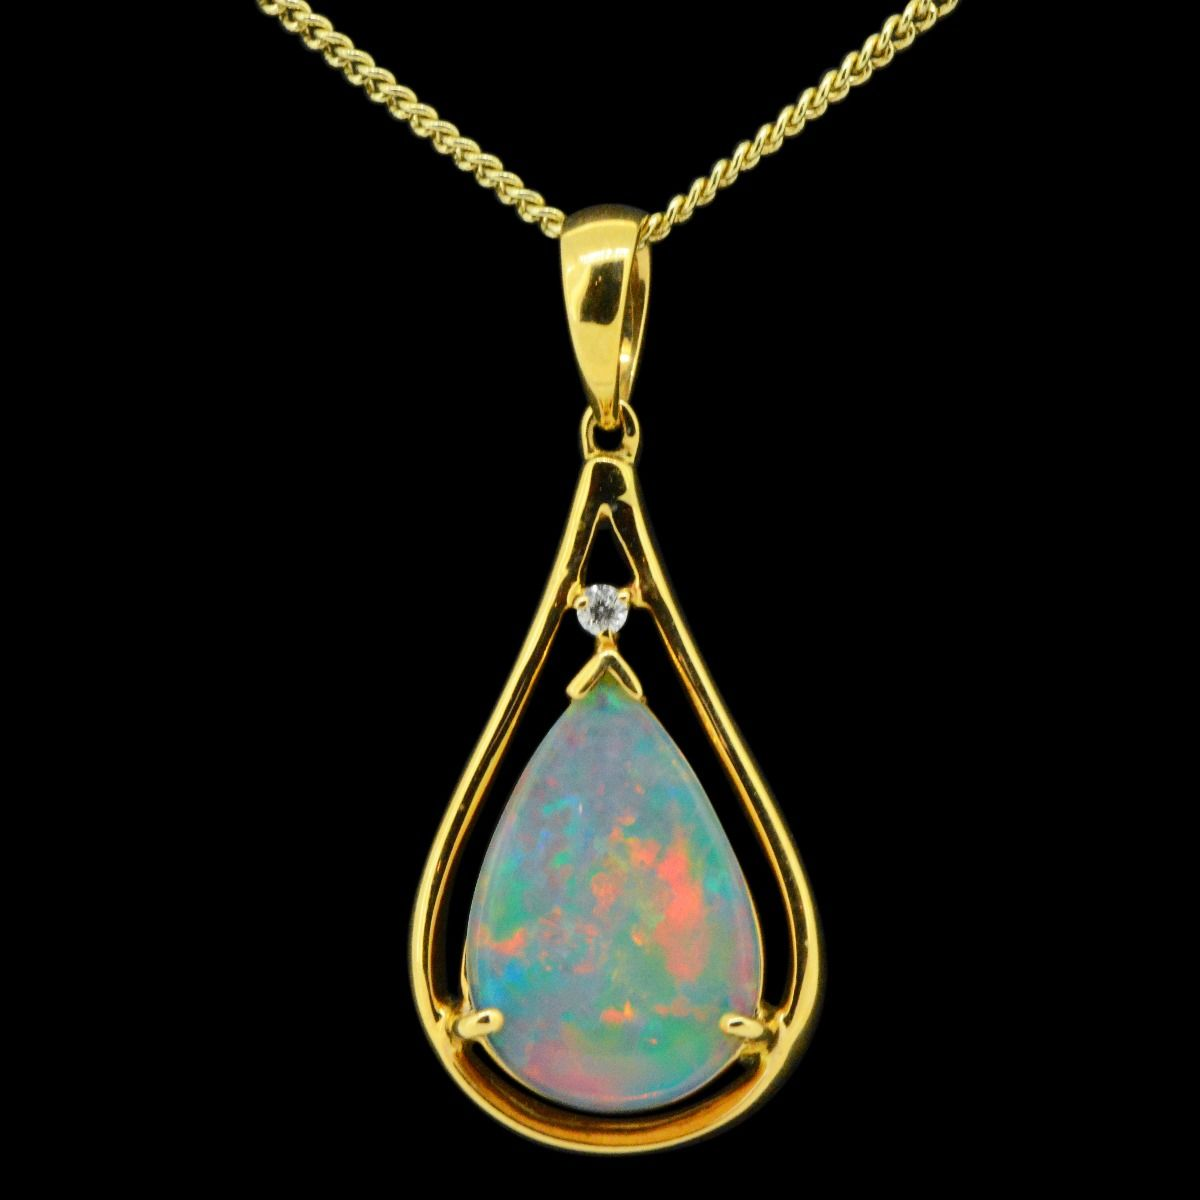 14ct yellow gold solid opal pendant (16mmx10mm)